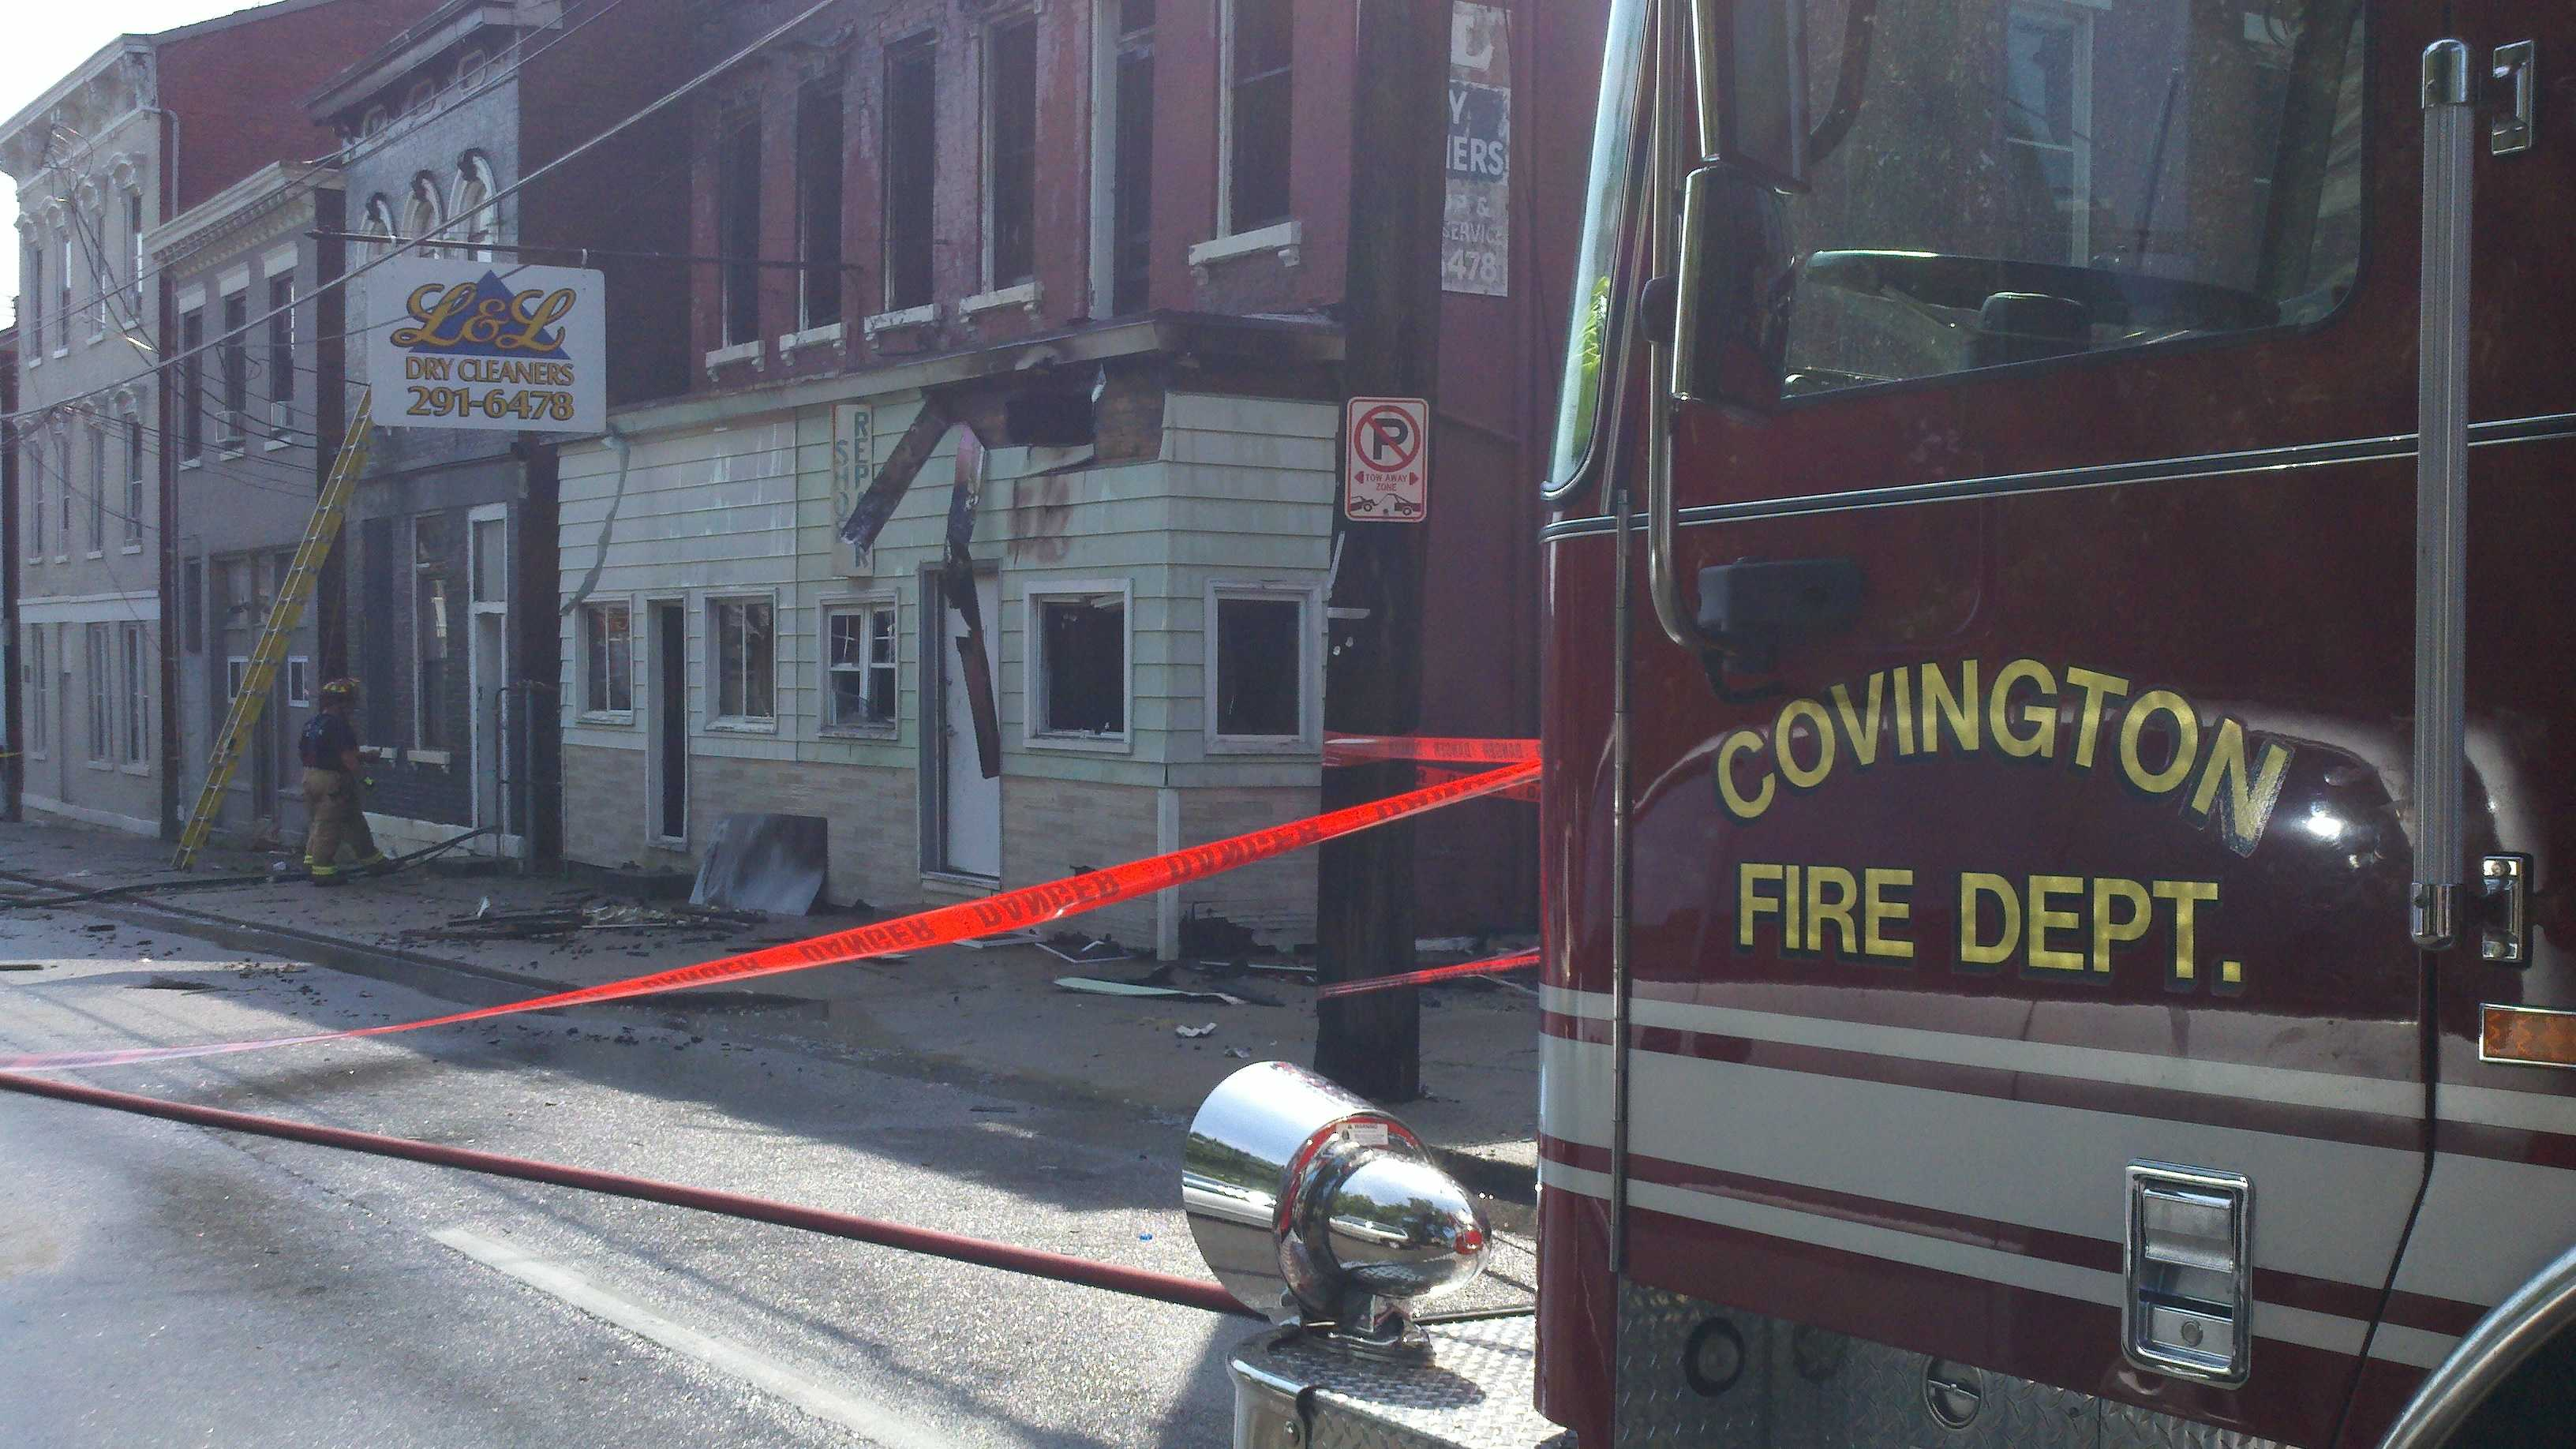 Covington dry cleaning catches fire.